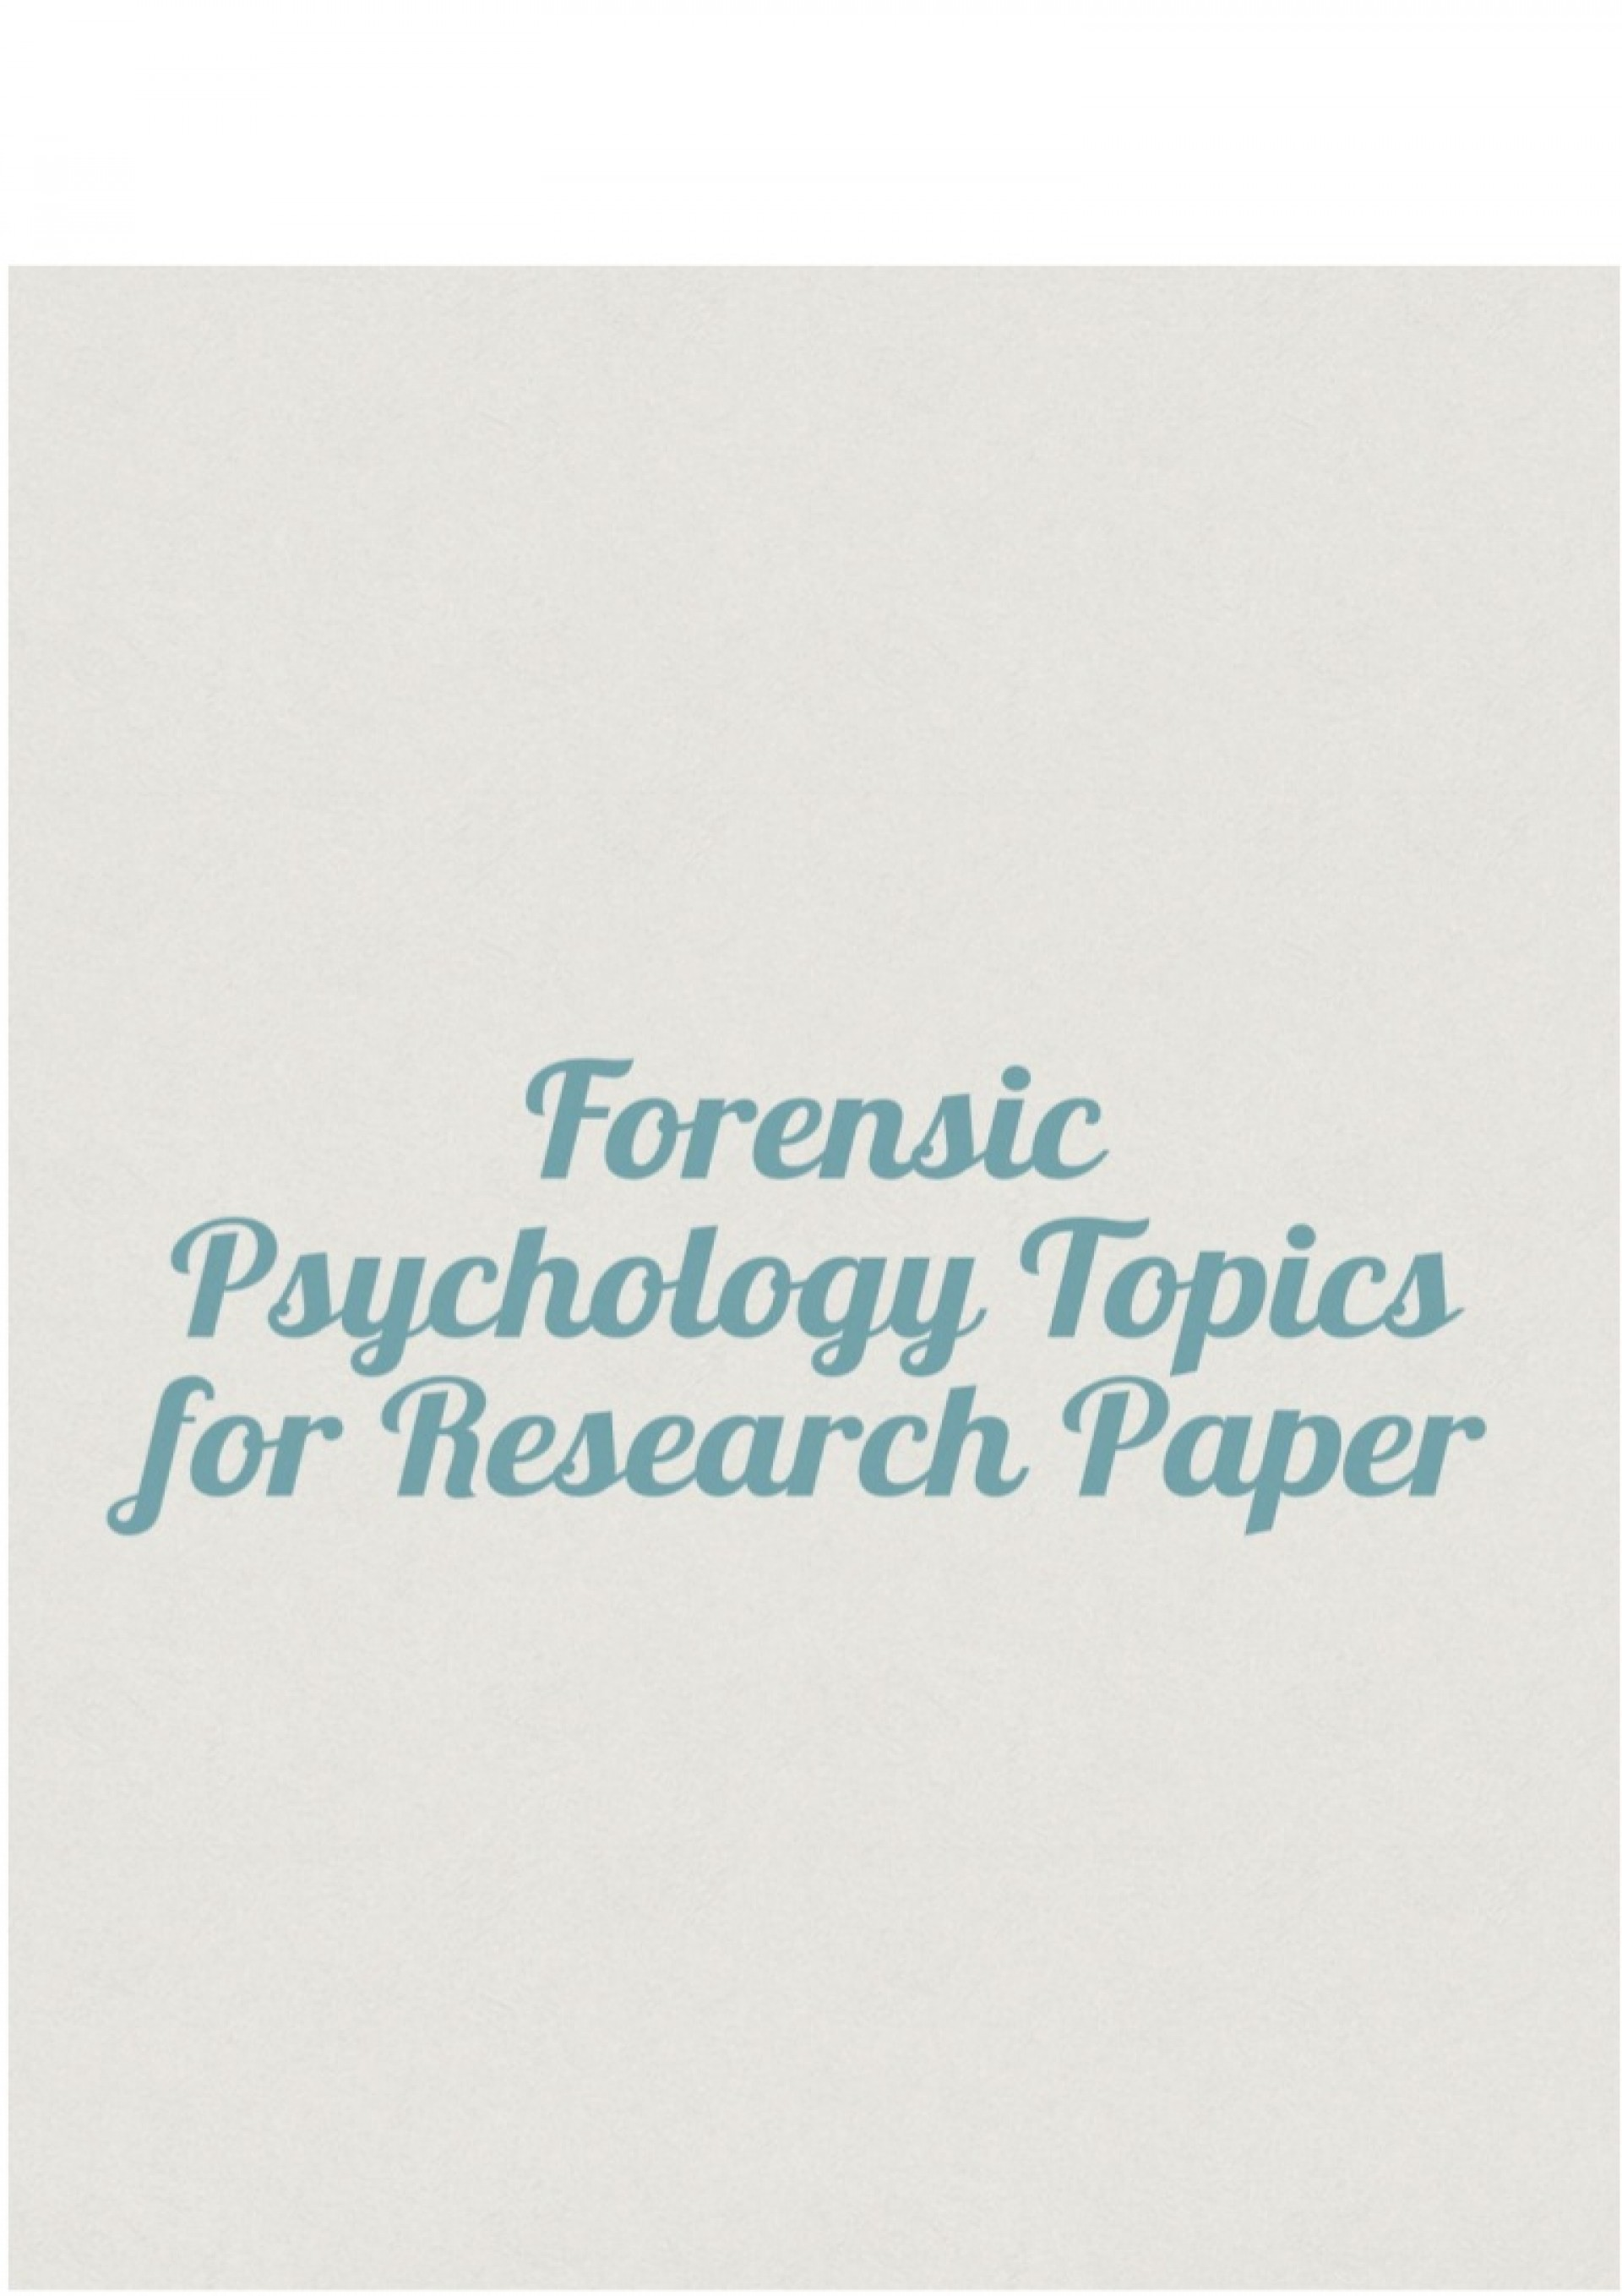 008 Psychology Topics For Research Paper Forensicpsychologytopicsforresearchpaper Thumbnail Wondrous Health Cognitive Papers Potential Developmental 1920